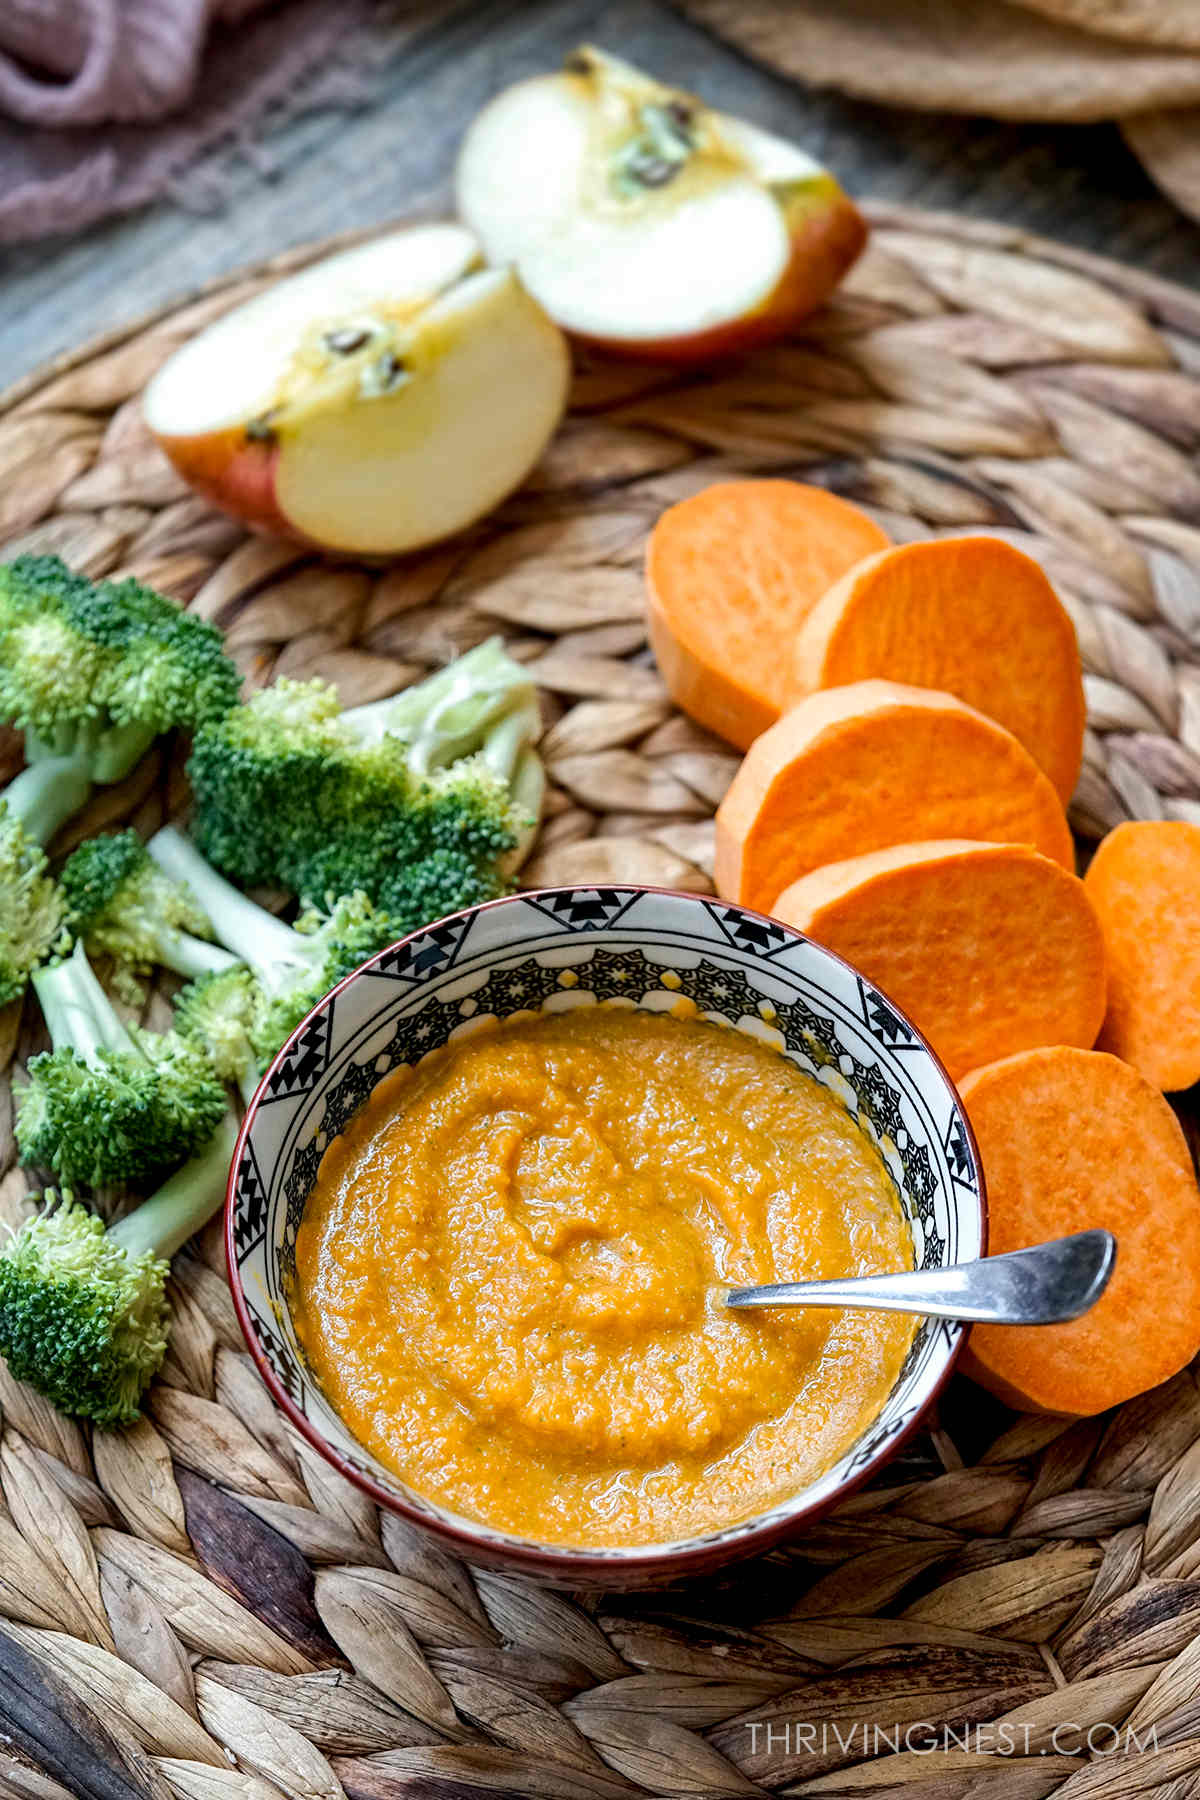 Sweet potato apple broccoli puree as baby food stage 2 for 6 months +.